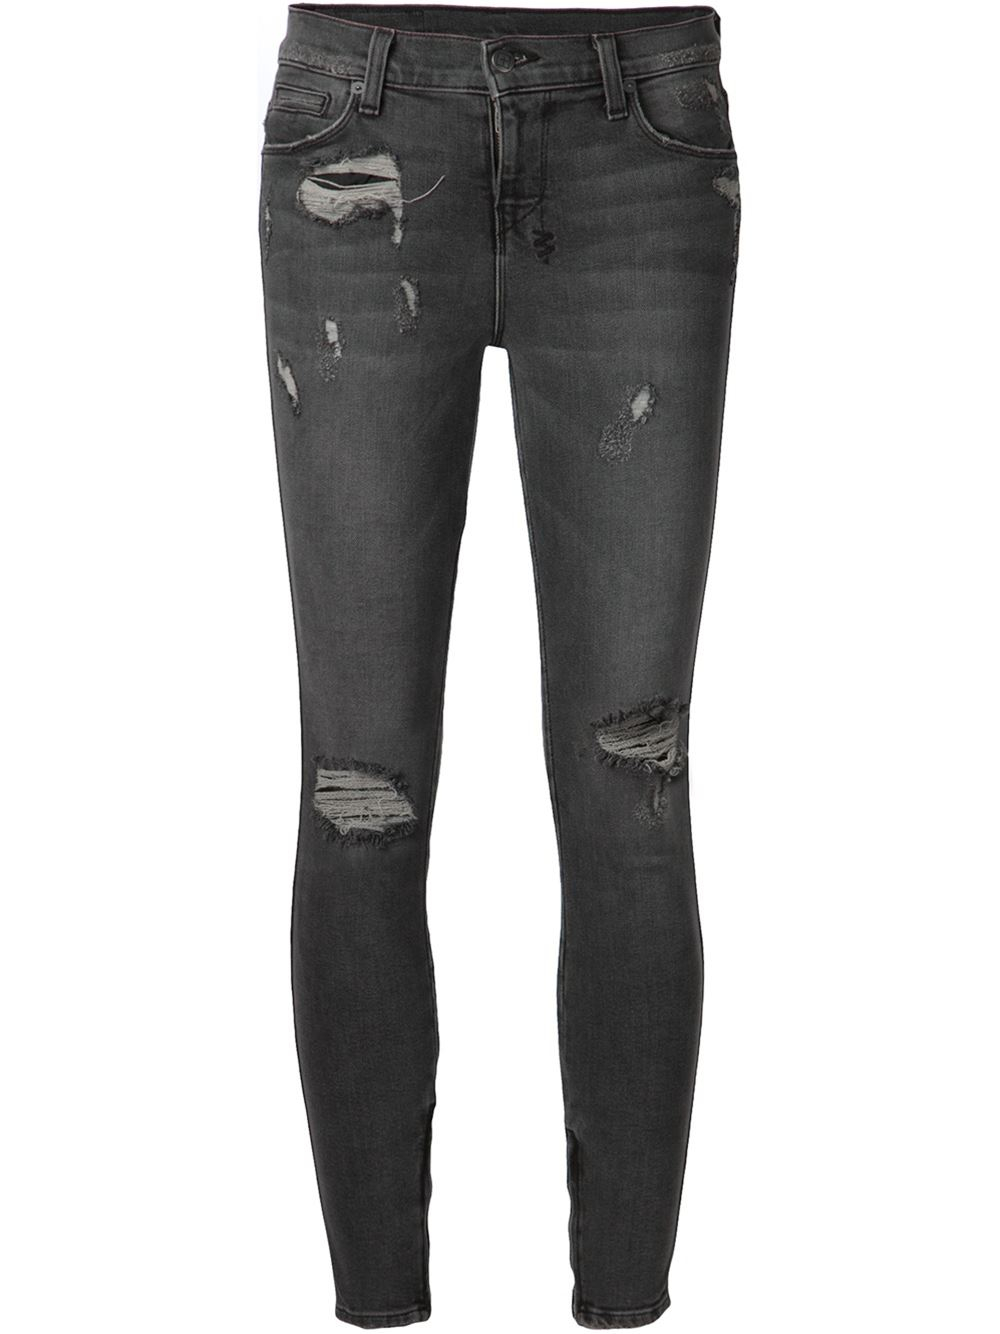 Distressed jeans are totally in. From slimming skinnies with holes at the knee to frayed boyfriends that fit just right, Old Navy has the distressed women's jeans .